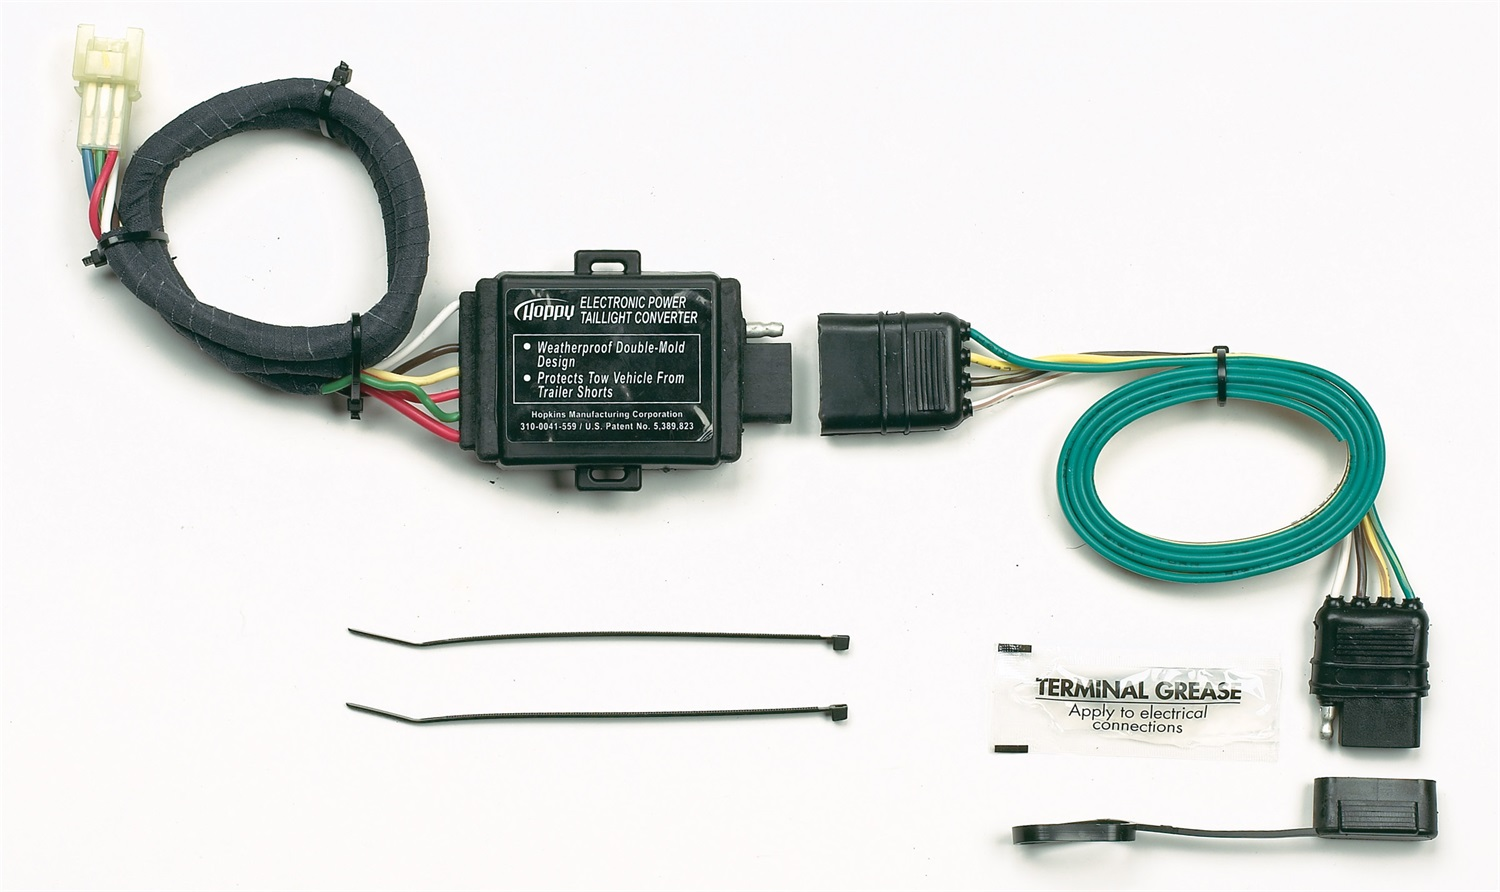 hopkins towing solution 43855 plug in simple vehicle to trailer hopkins wiring harness 47816 image is loading hopkins towing solution 43855 plug in simple vehicle